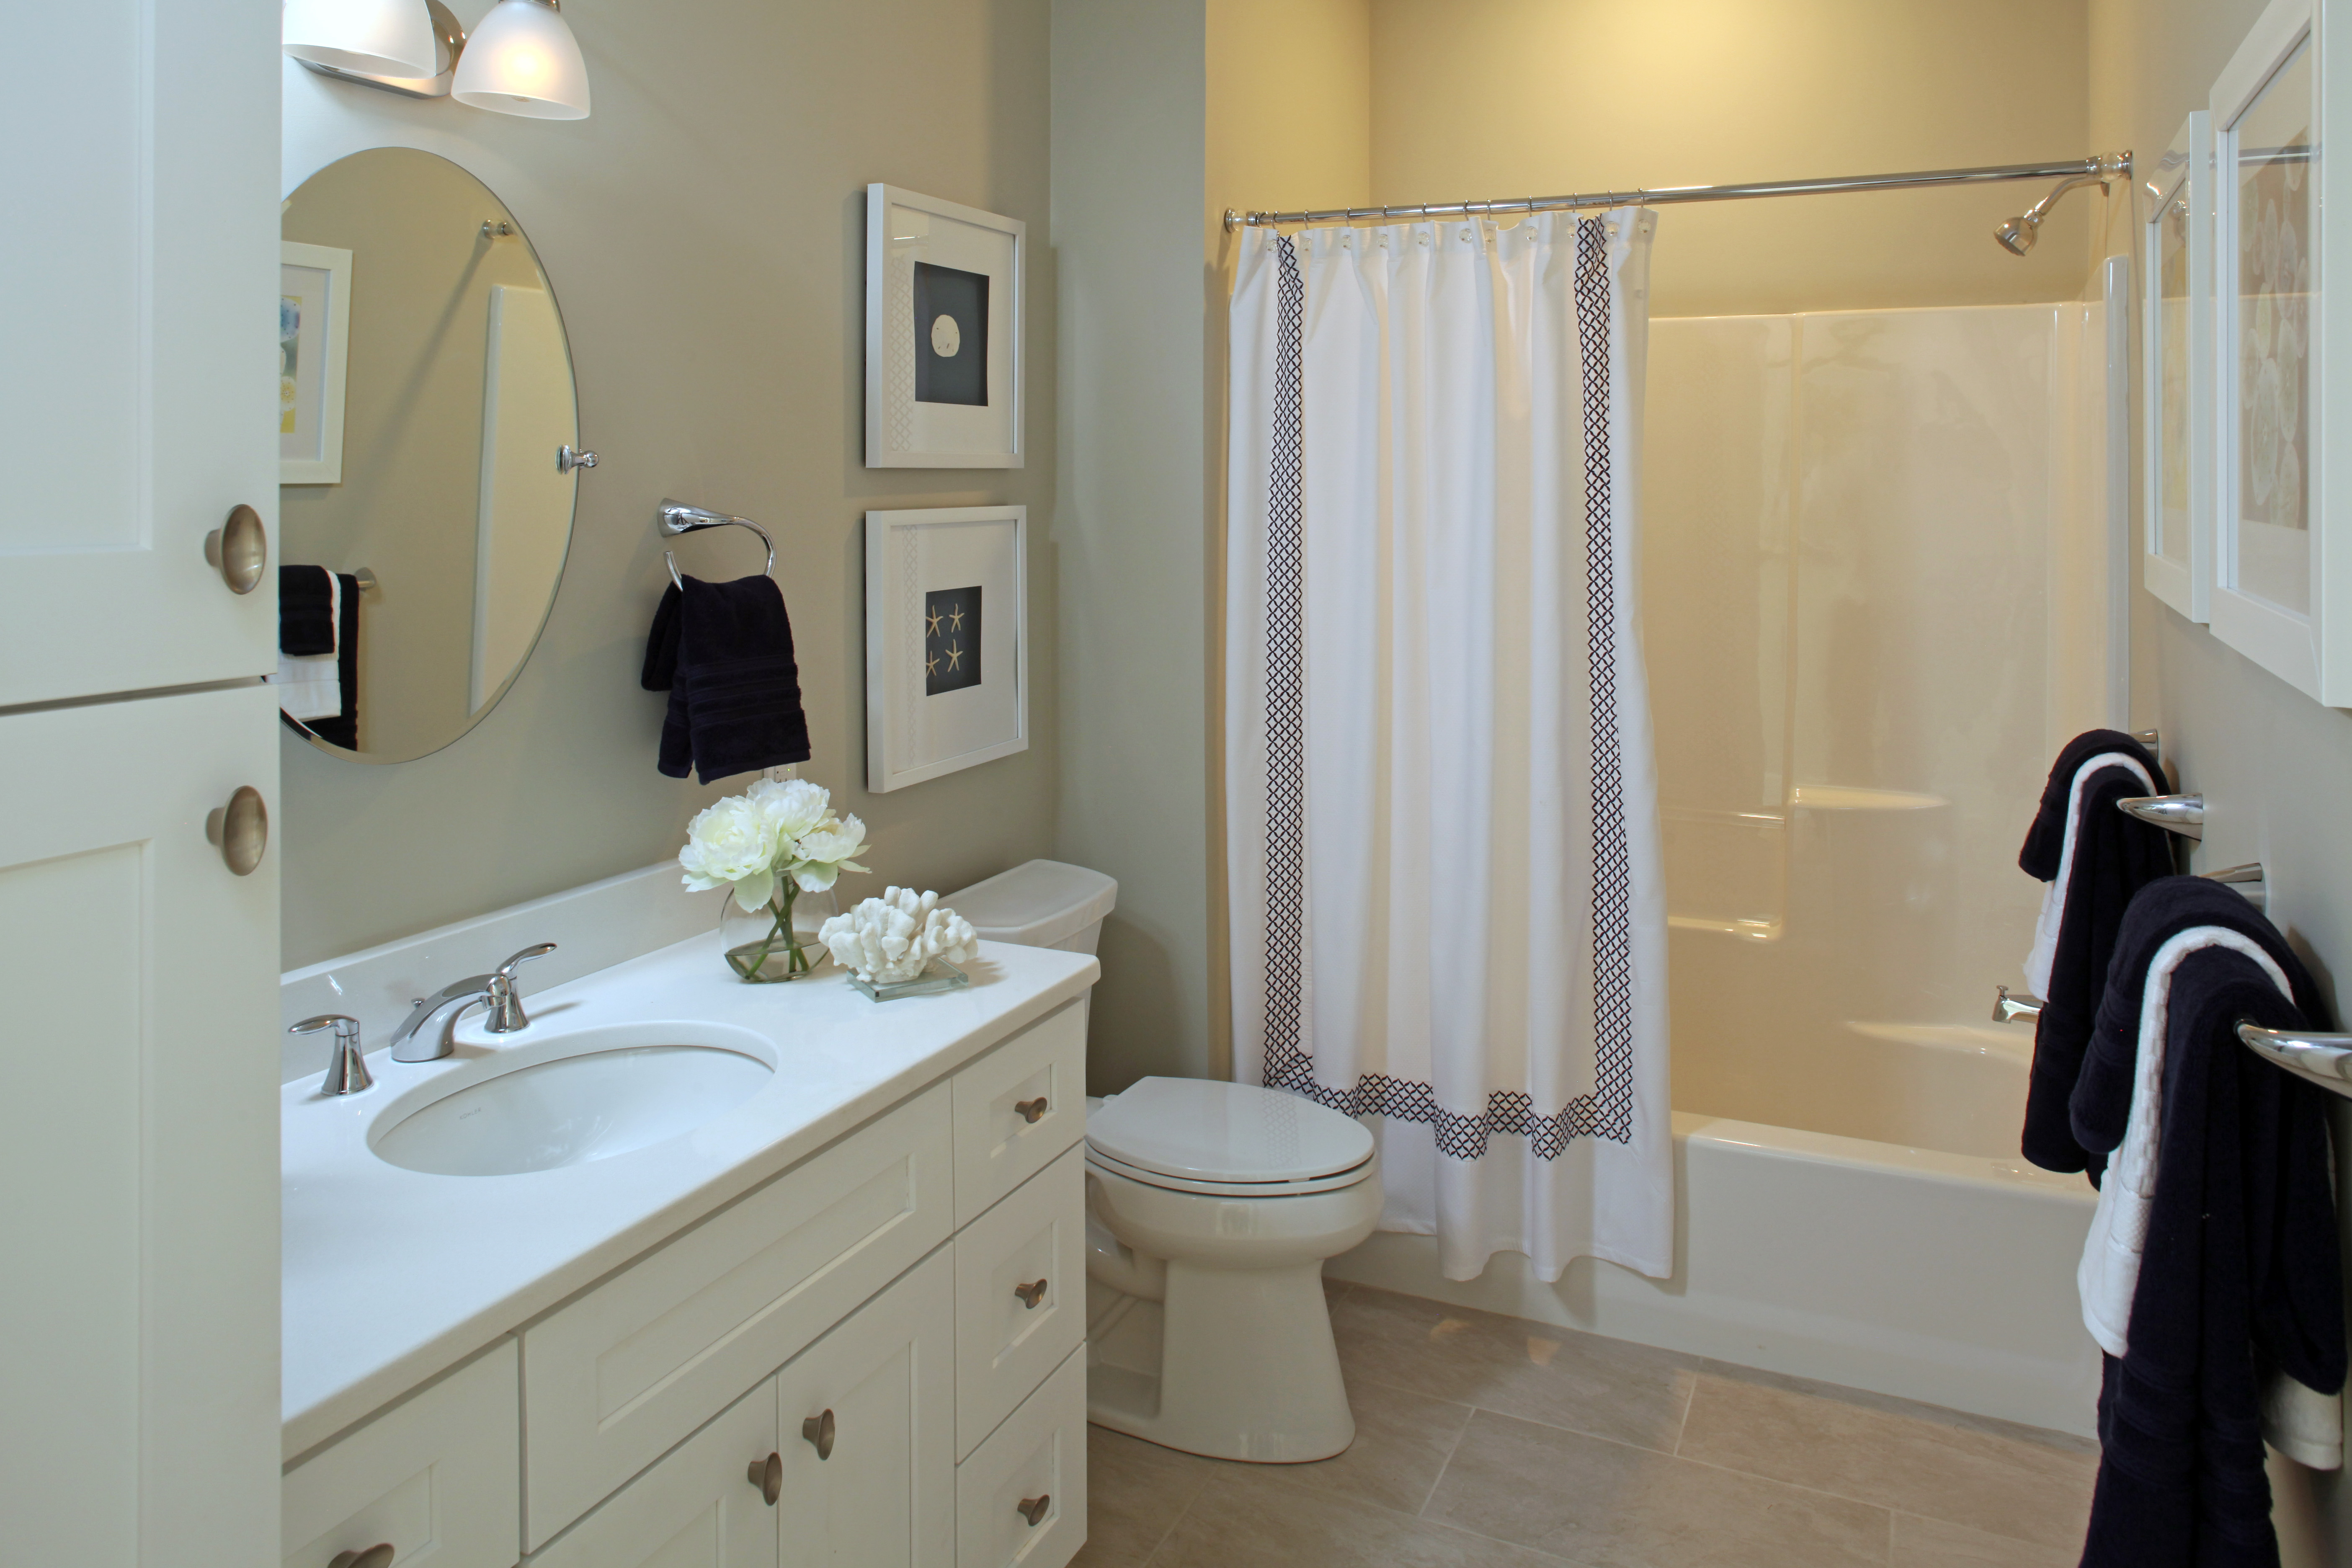 Sconset Landing Bathroom